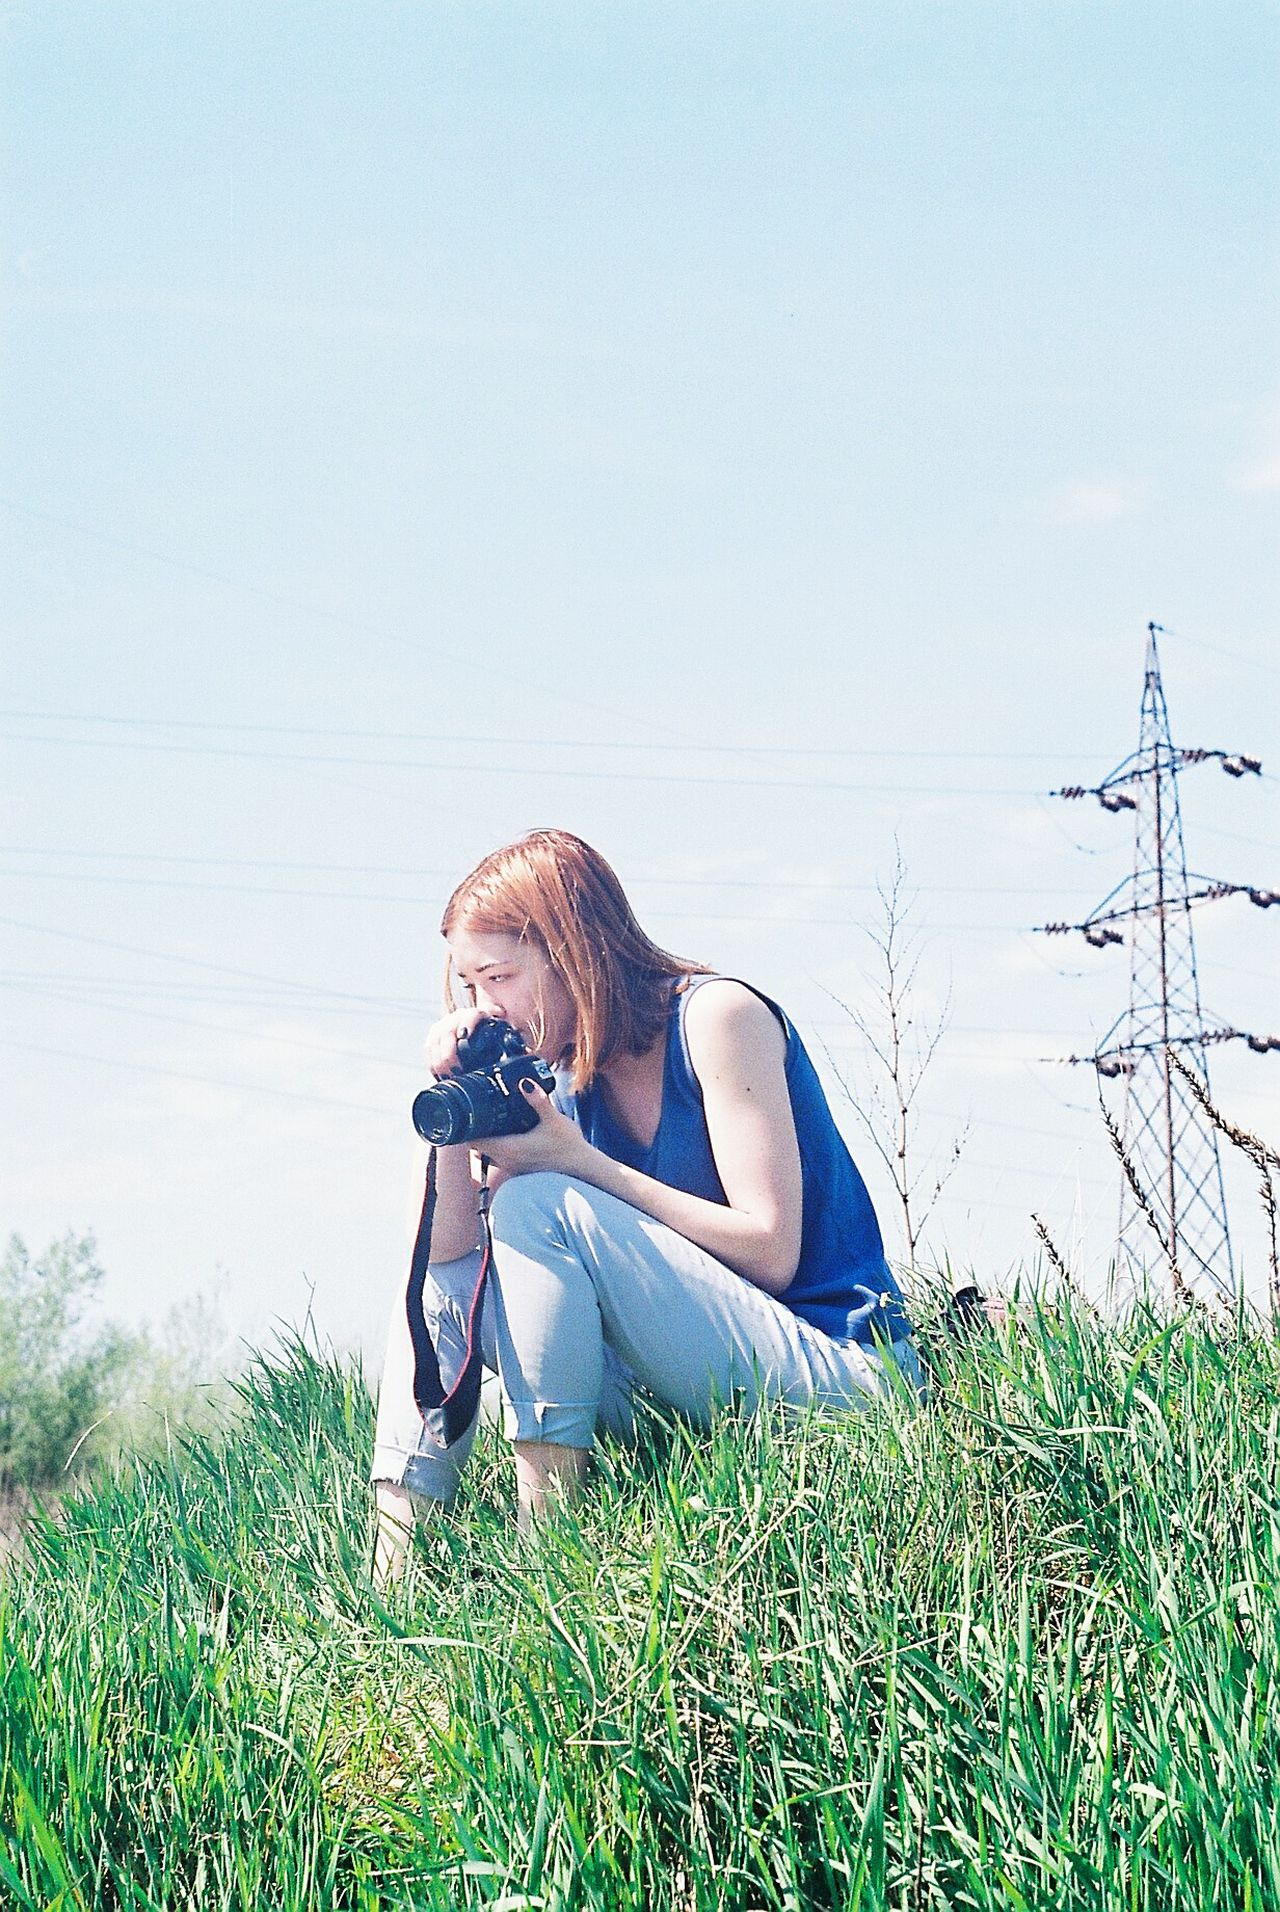 Analogue Photography Analog Film Photography 35mm Film 35mm Zenit Kodak Summer Nature Technology Modern Modern Life Young Ginger Gingerhair Short Hair Camera Taking Pictures Nature And Technology Envision The Future